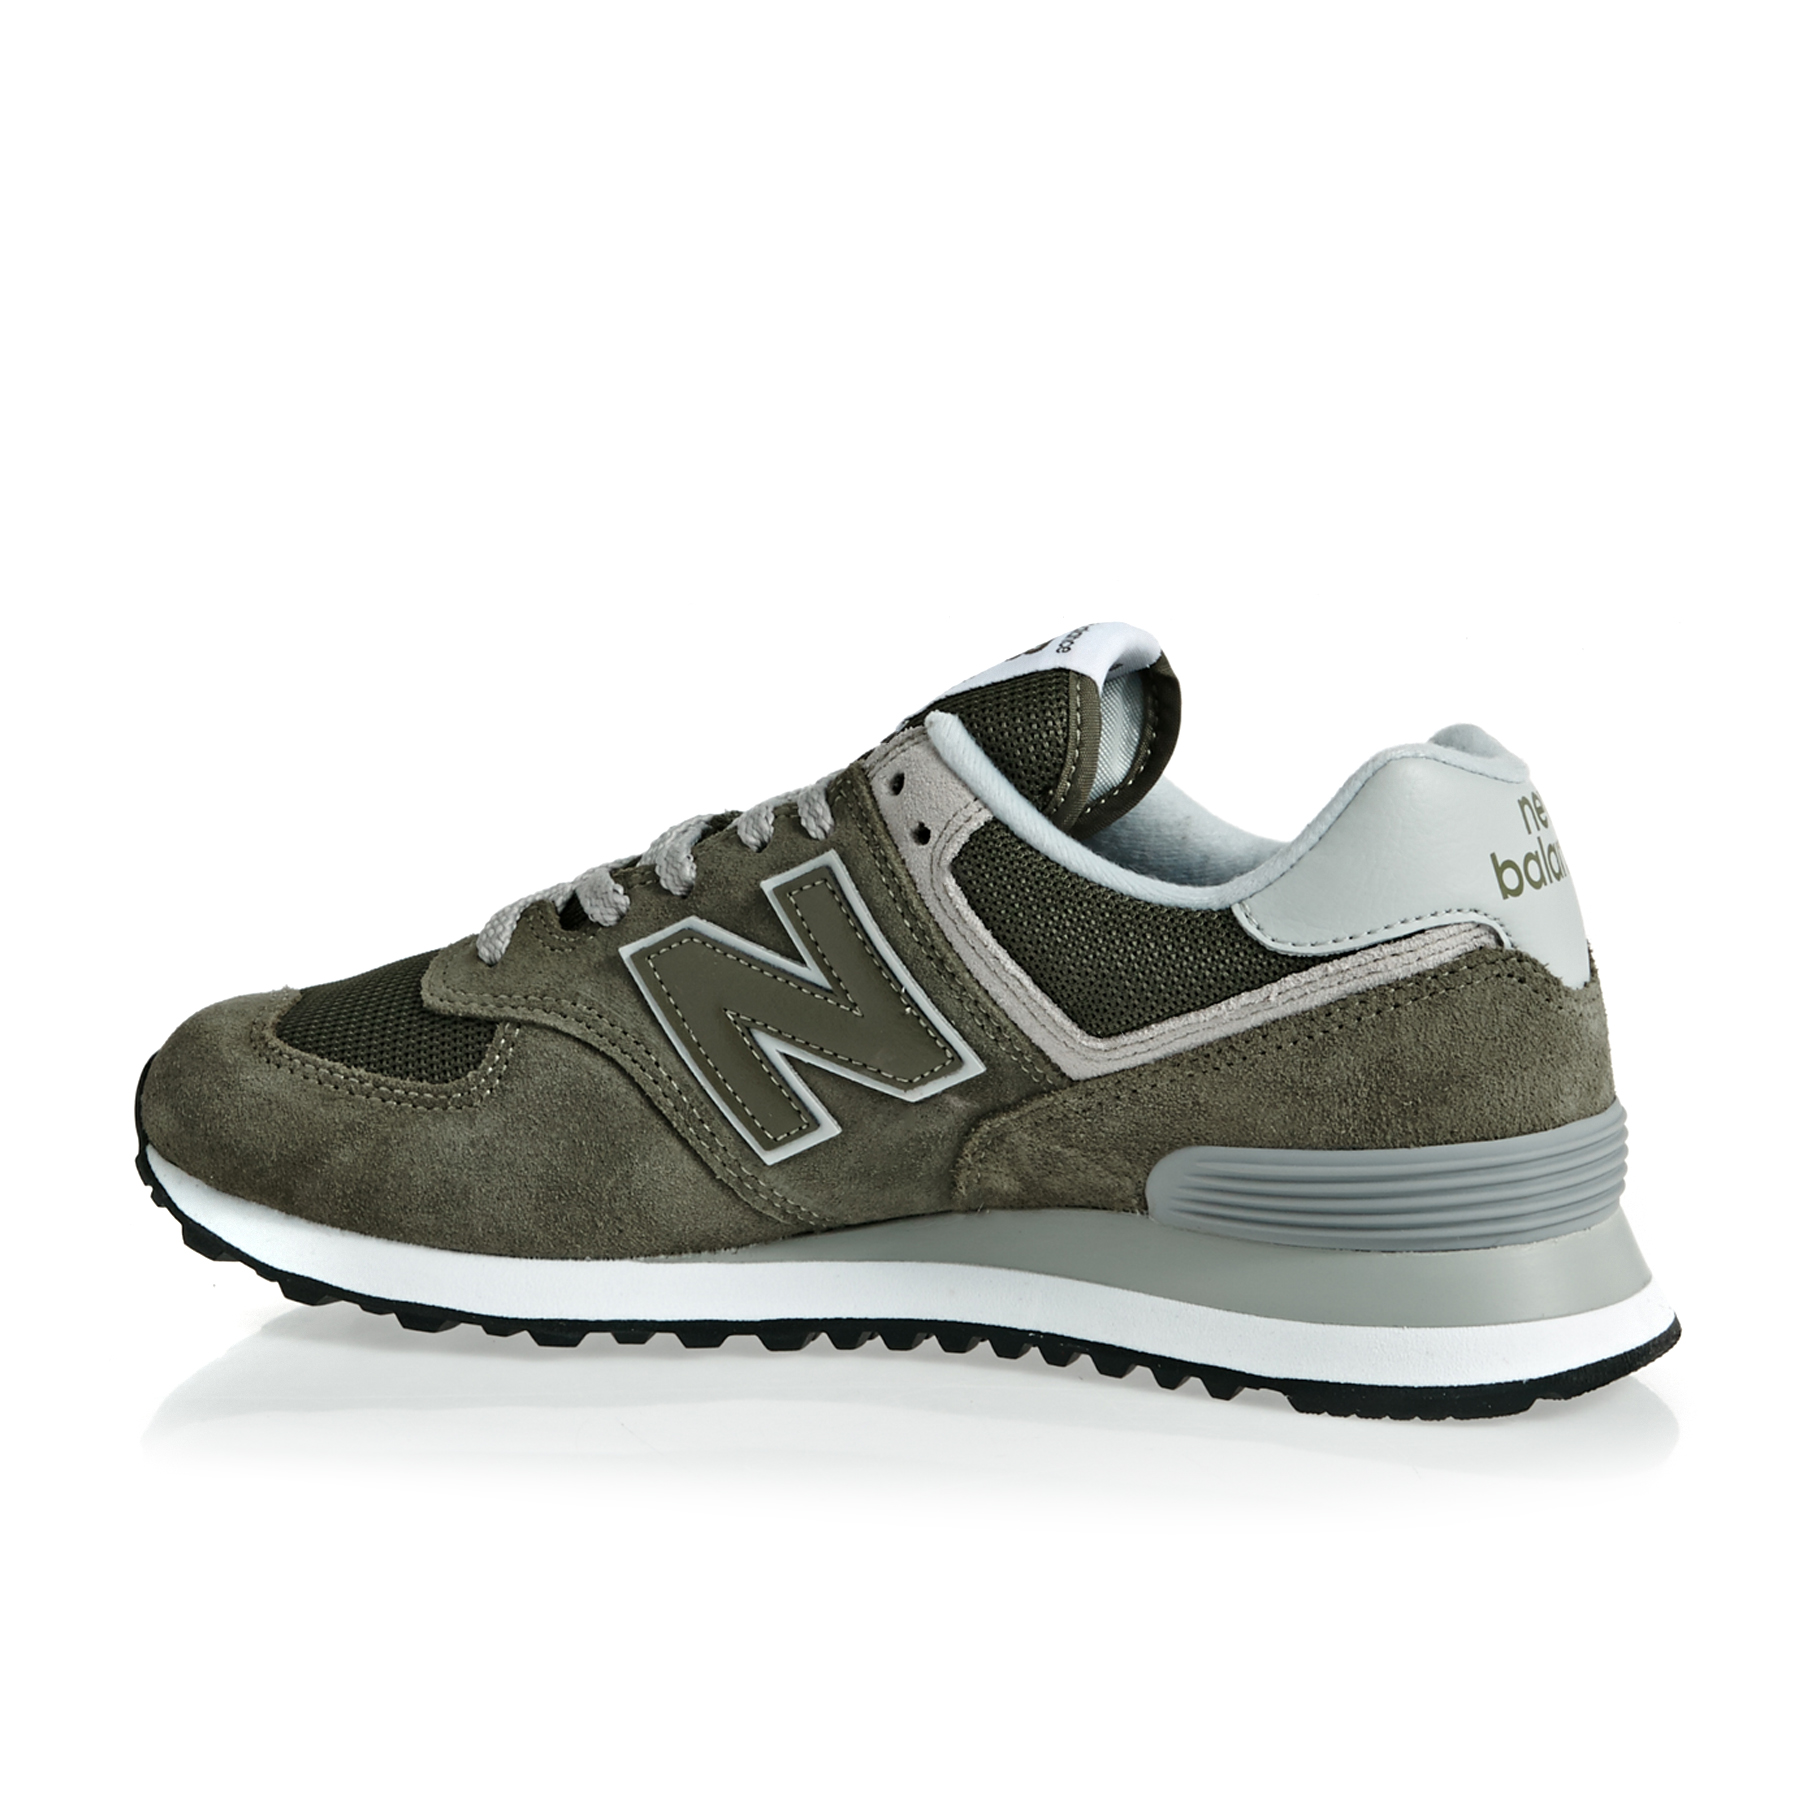 New Balance Ml574 Shoes available from Surfdome